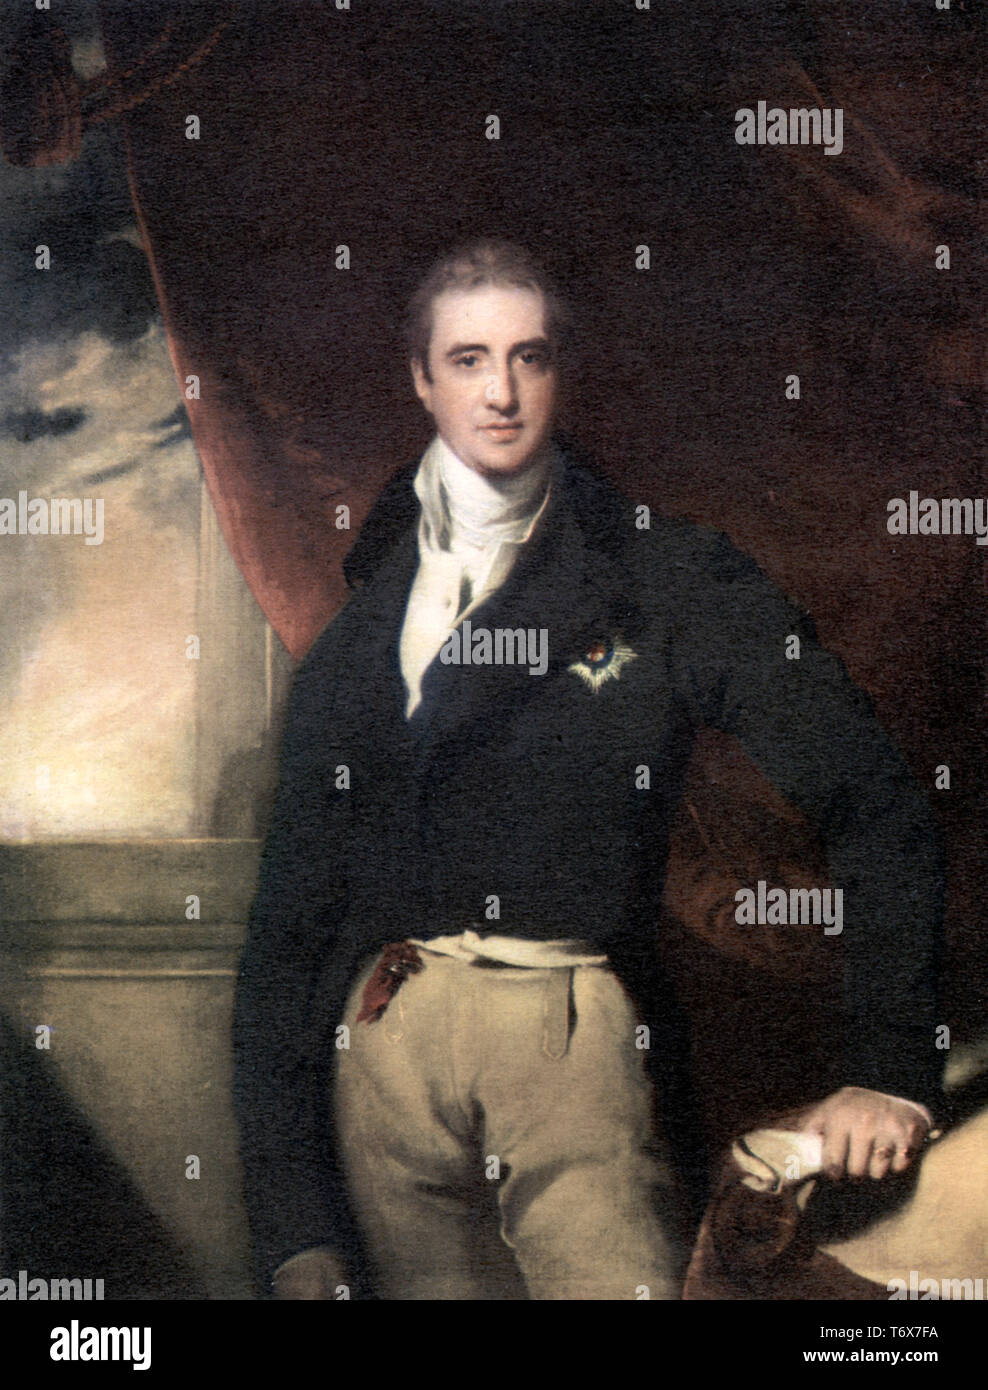 Robert Stewart, 2nd Viscount Castlereagh and 2nd Marquess of Londonderry (1769–1822), c1814. By Sir Thomas Lawrence (1769–1830). Lord Castlereagh, Irish/British statesman. As British Foreign Secretary, from 1812 he was central to the management of the coalition that defeated Napoleon and was the principal British diplomat at the Congress of Vienna. Castlereagh was also leader of the British House of Commons in the Liverpool government from 1812 until his suicide. As Chief Secretary for Ireland, he was involved in putting down the Irish Rebellion of 1798. - Stock Image